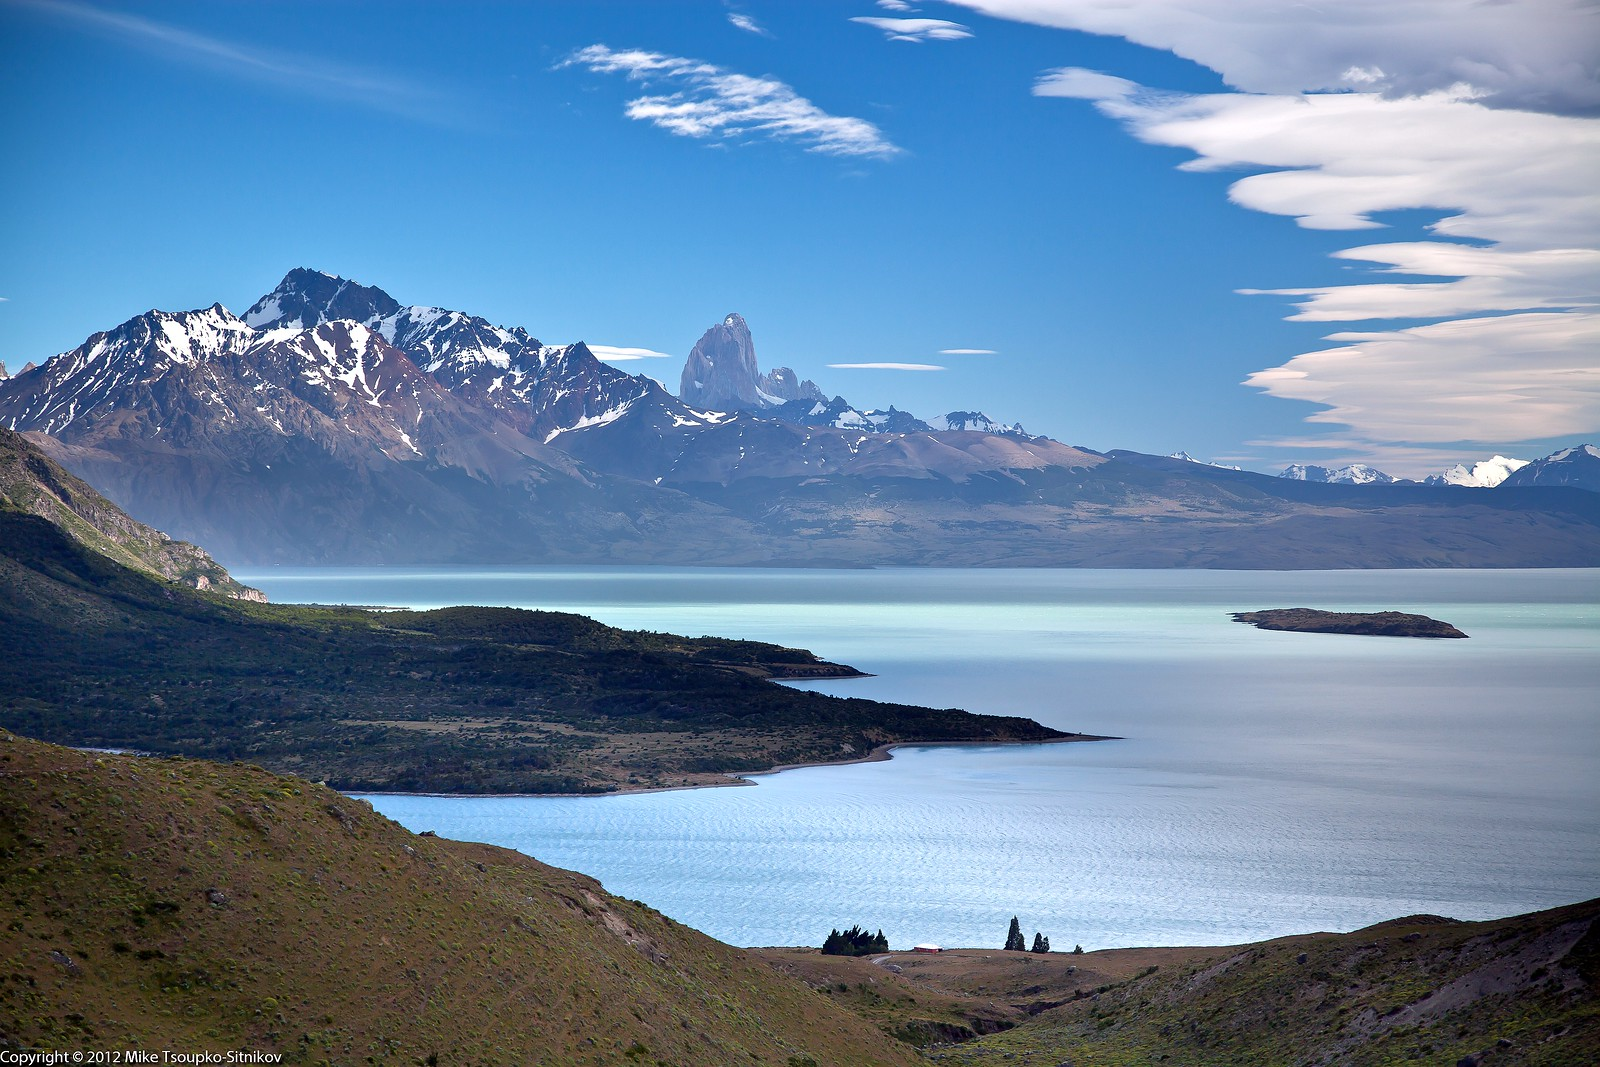 Estancia Helsingfors (front center), Lake Viedma and the rock of Fitz Roy (far center).